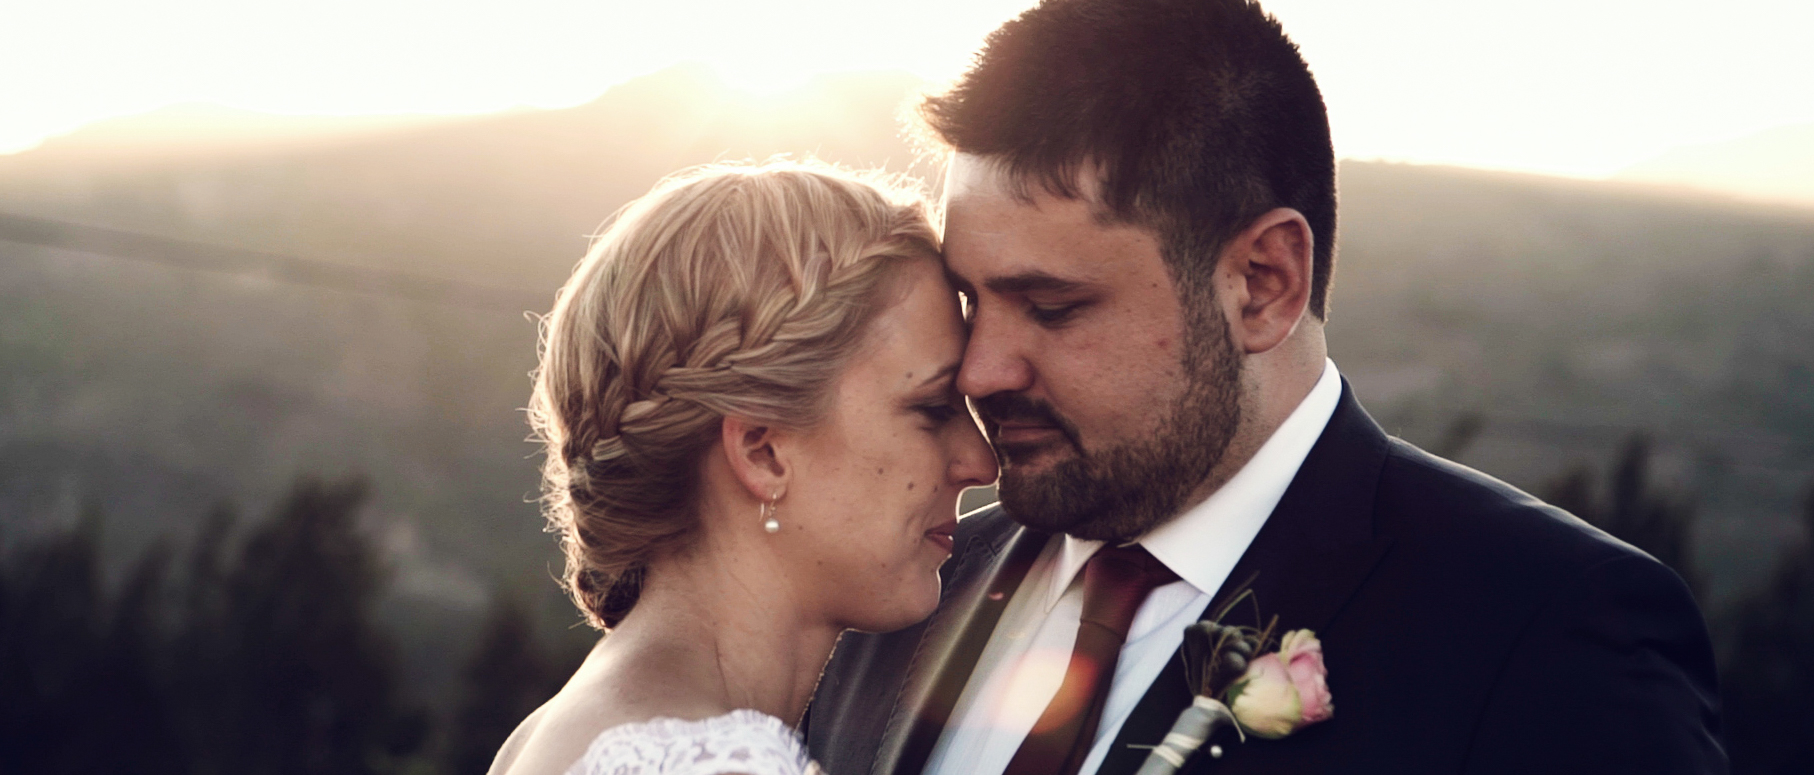 Carli + Peter John | South Africa, South Africa | Vondeling Wines